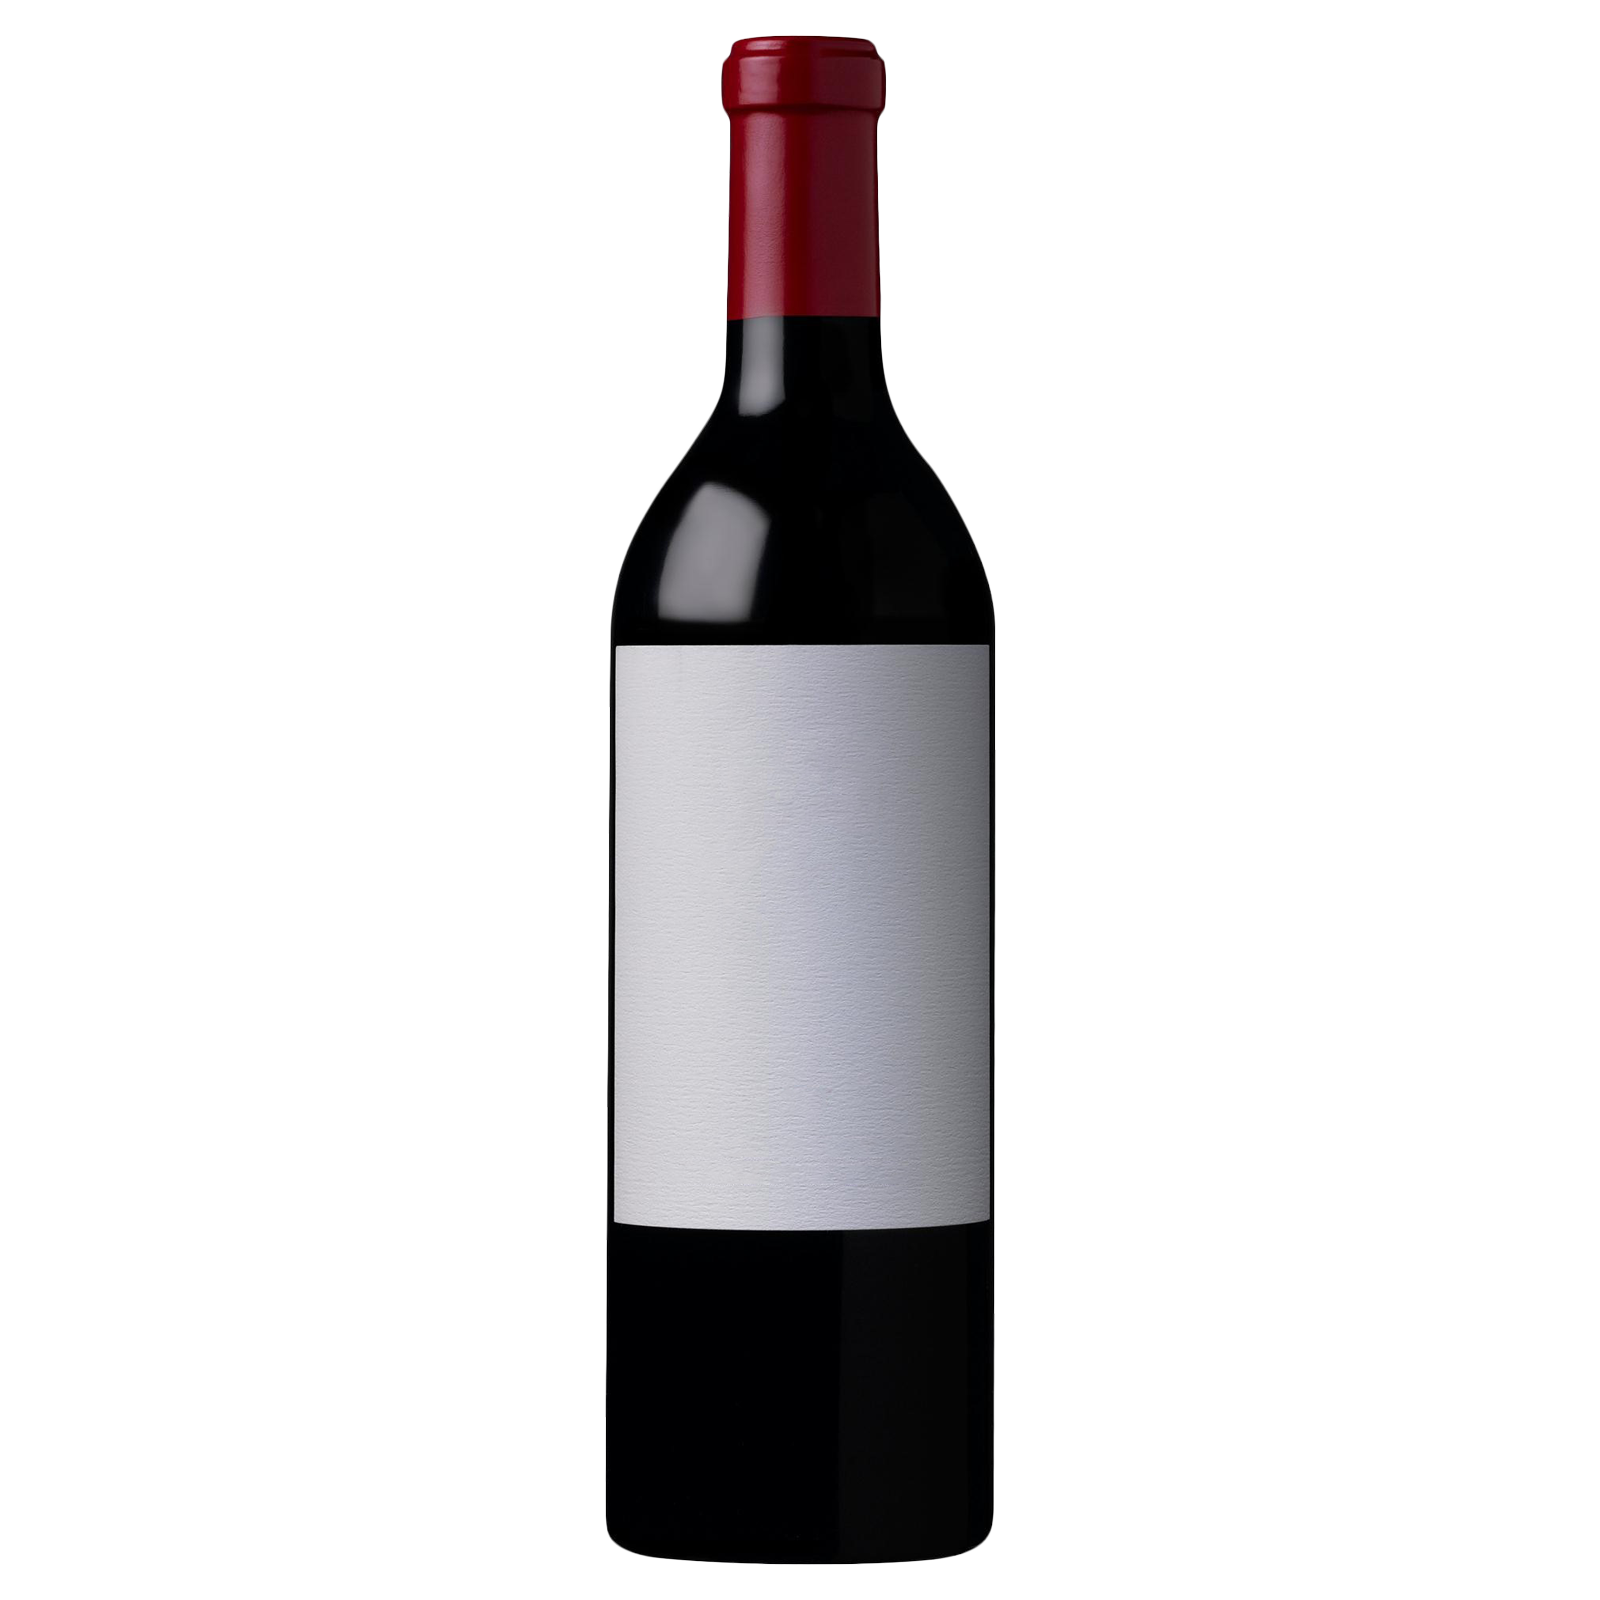 2013 ALION RIBERA DEL DUERO 750ML